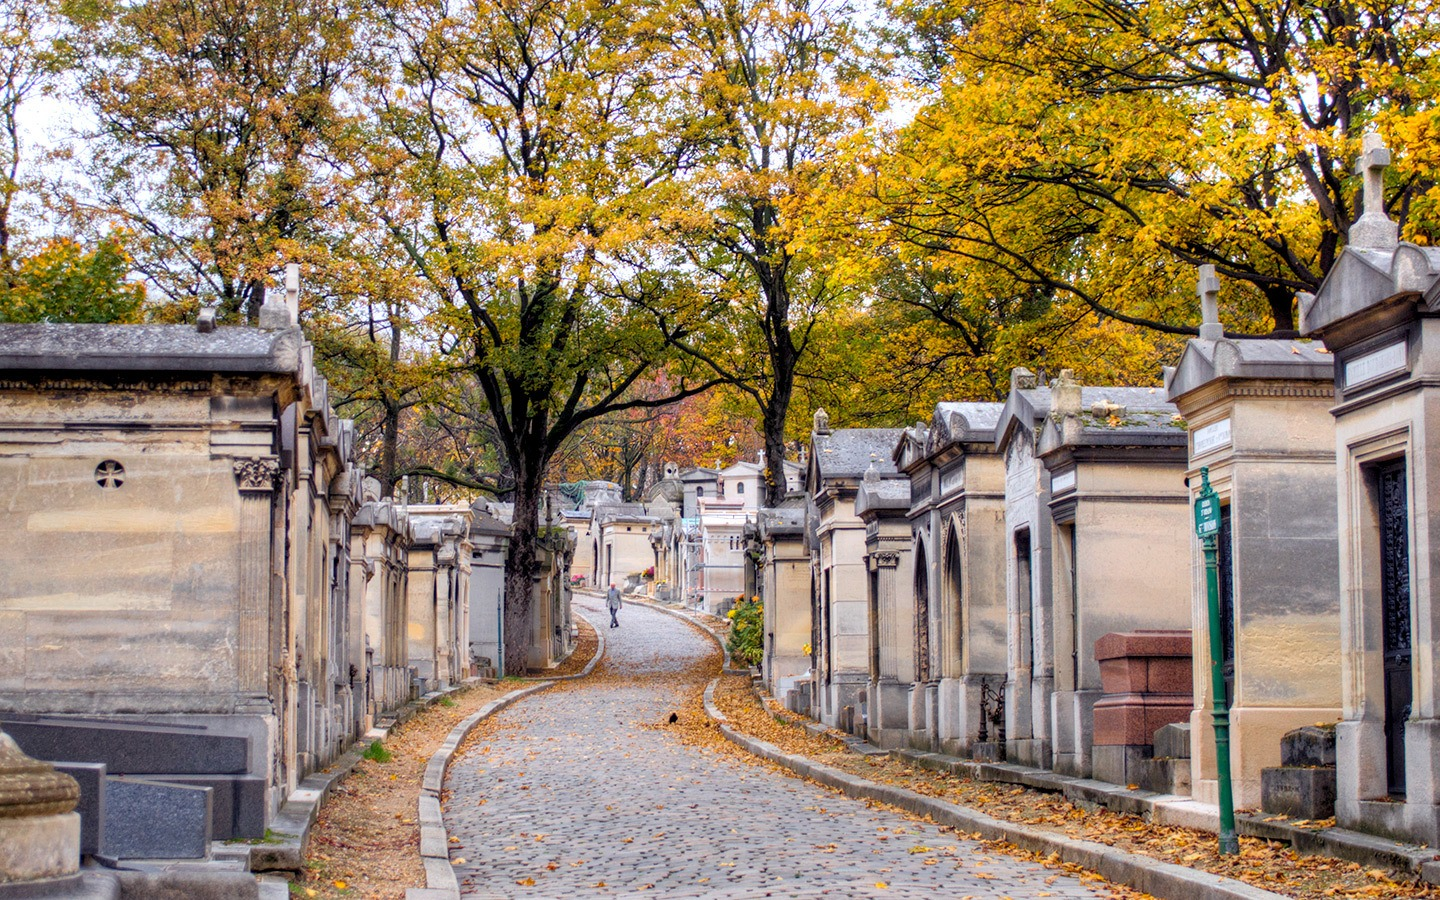 Paris in autumn – colourful leaves in Père-Lachaise cemetery